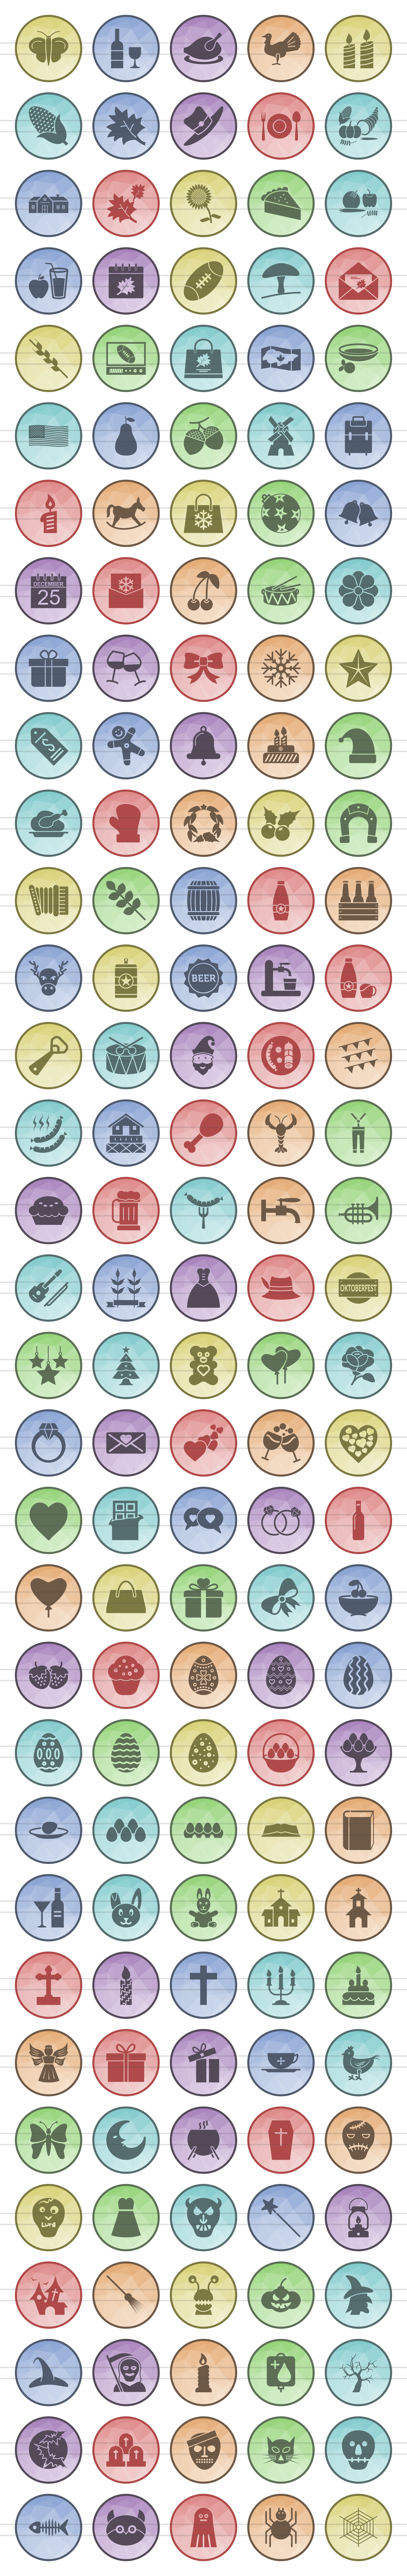 166 Observances & Holiday Filled Low Poly Icons example image 2